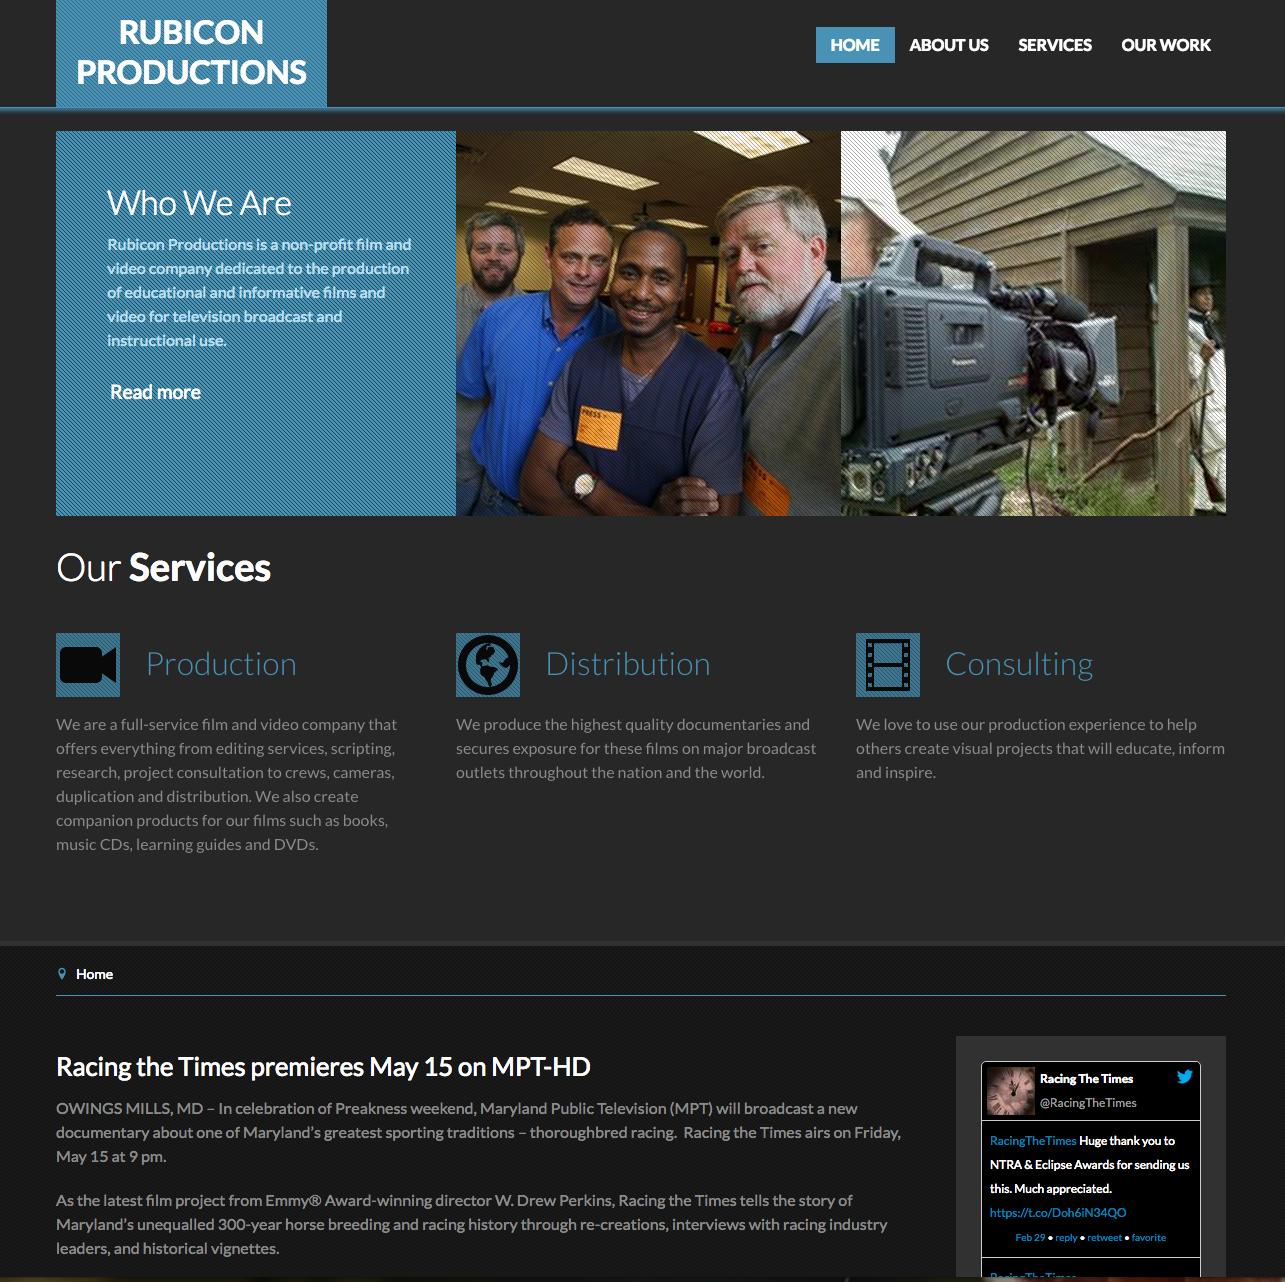 Rubicon Productions